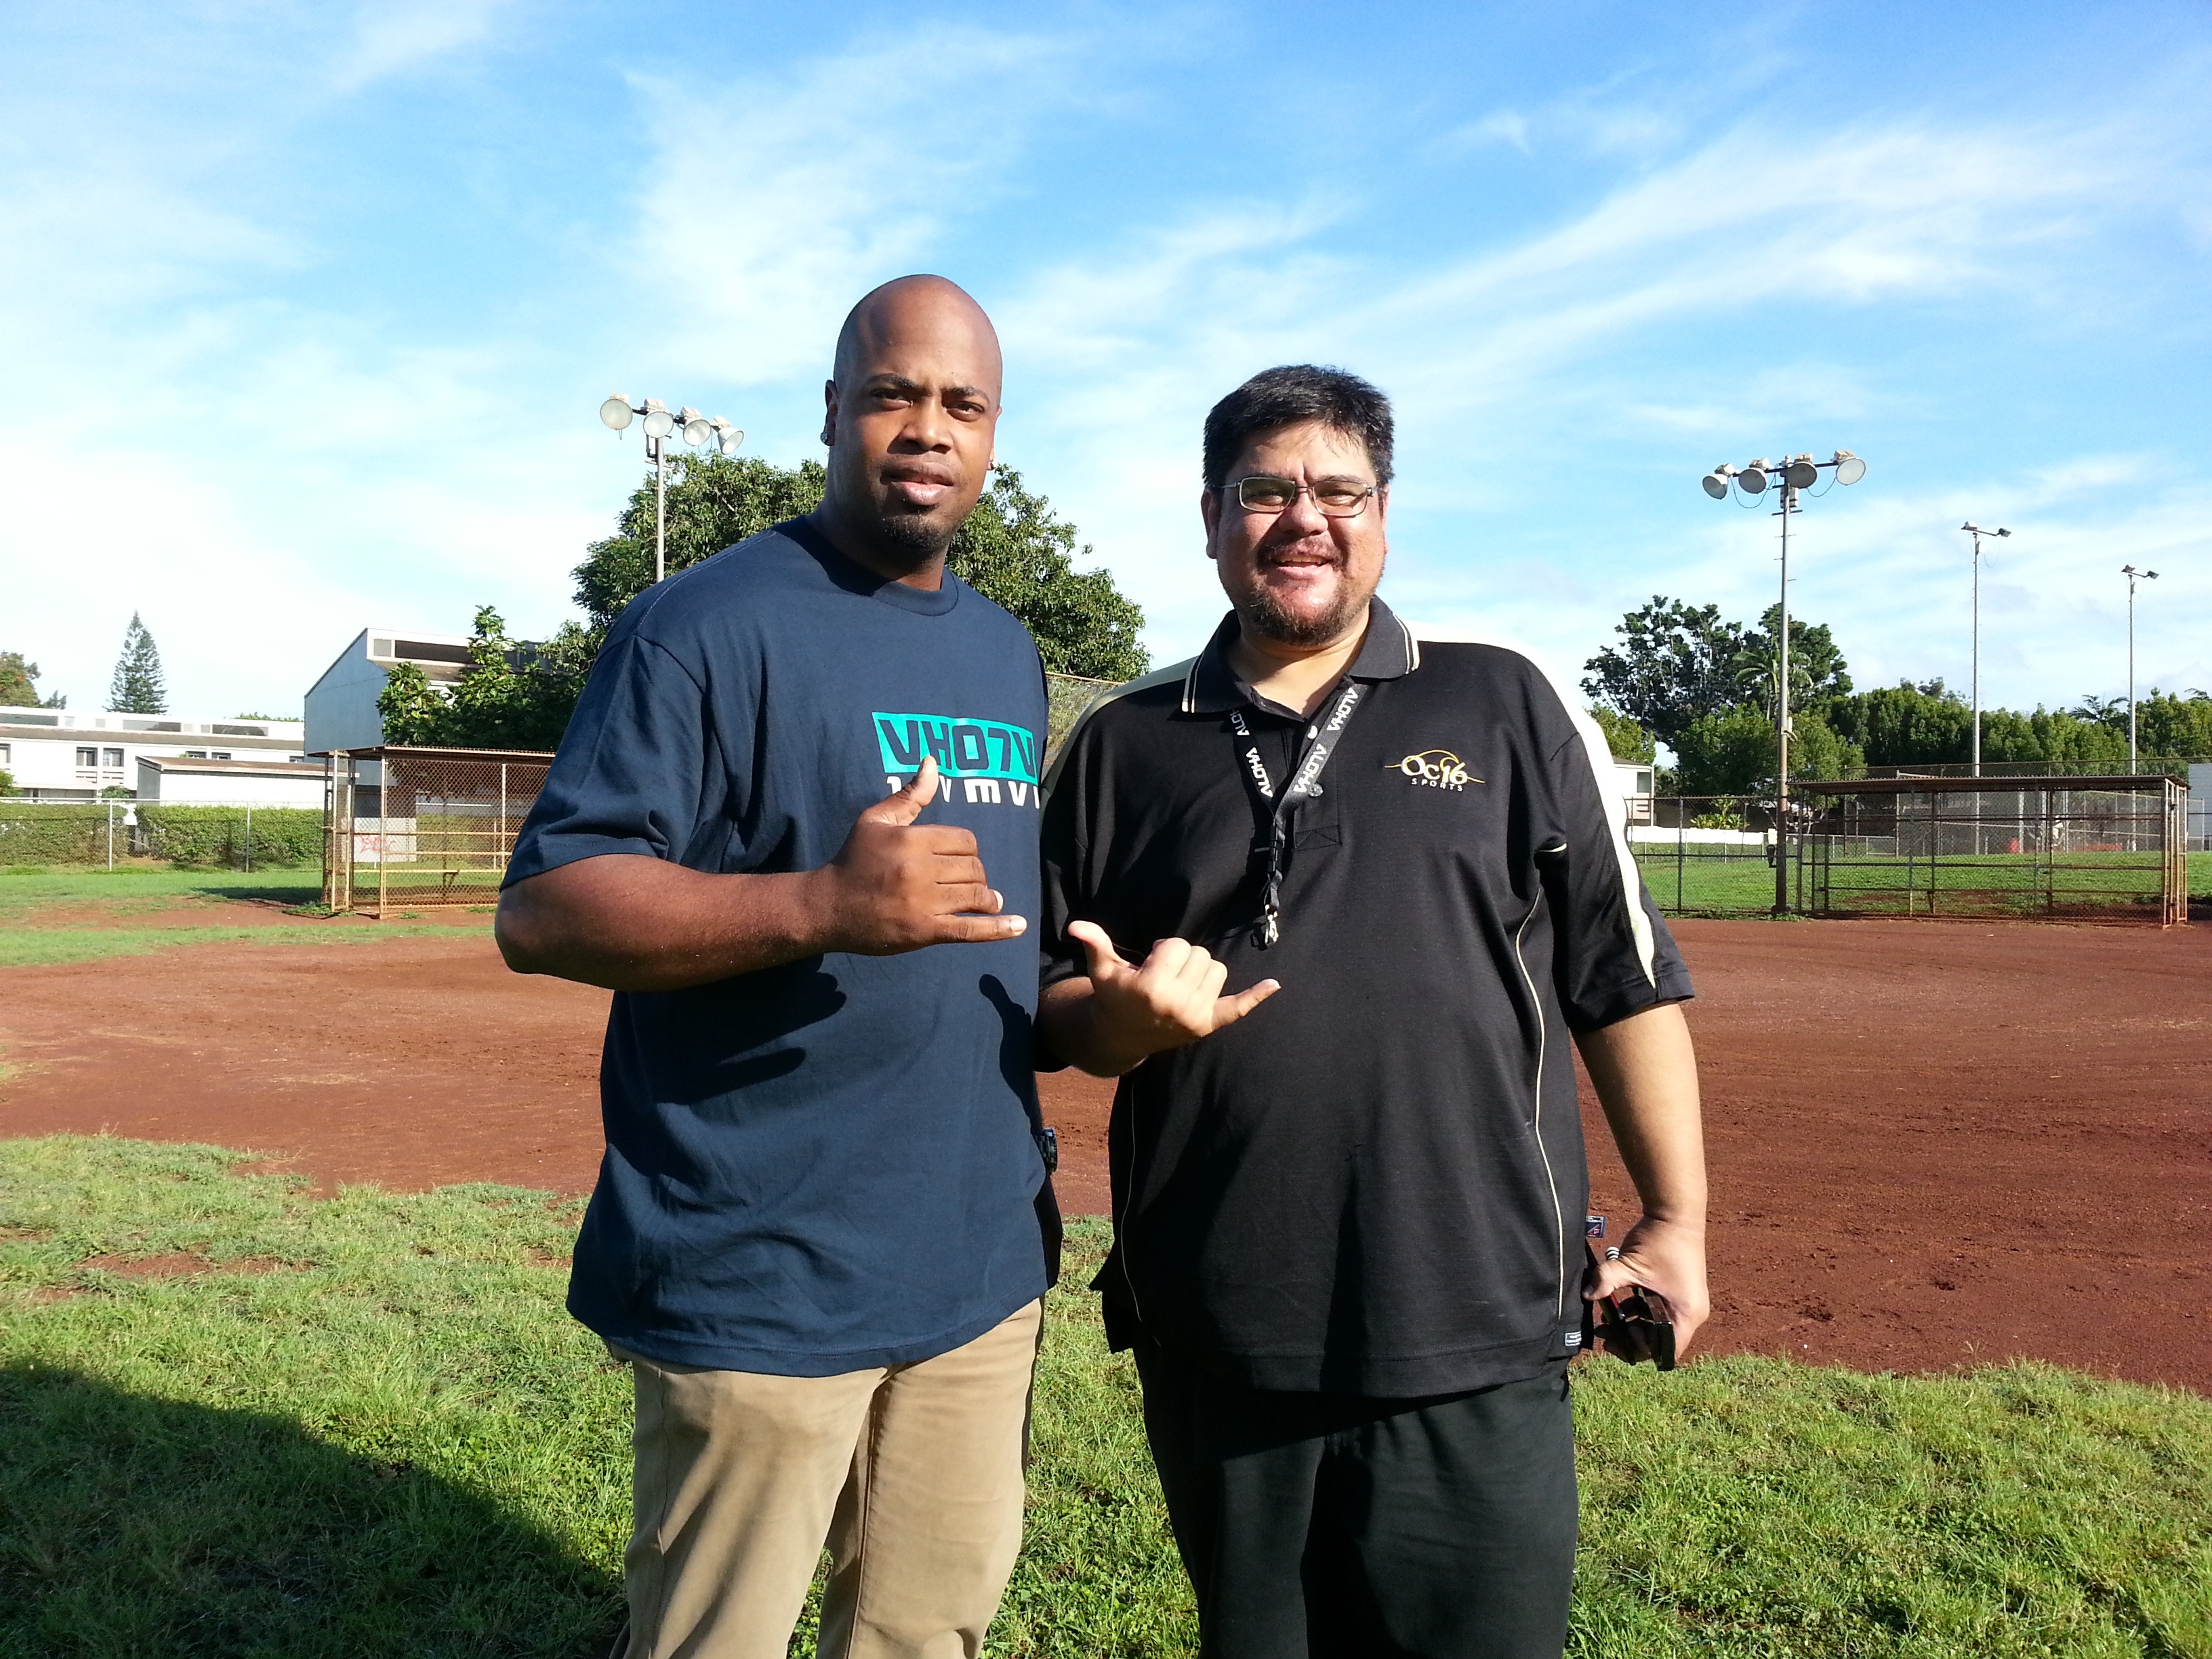 Jerome Williams – Spreading Aloha, One Pitch at a Time